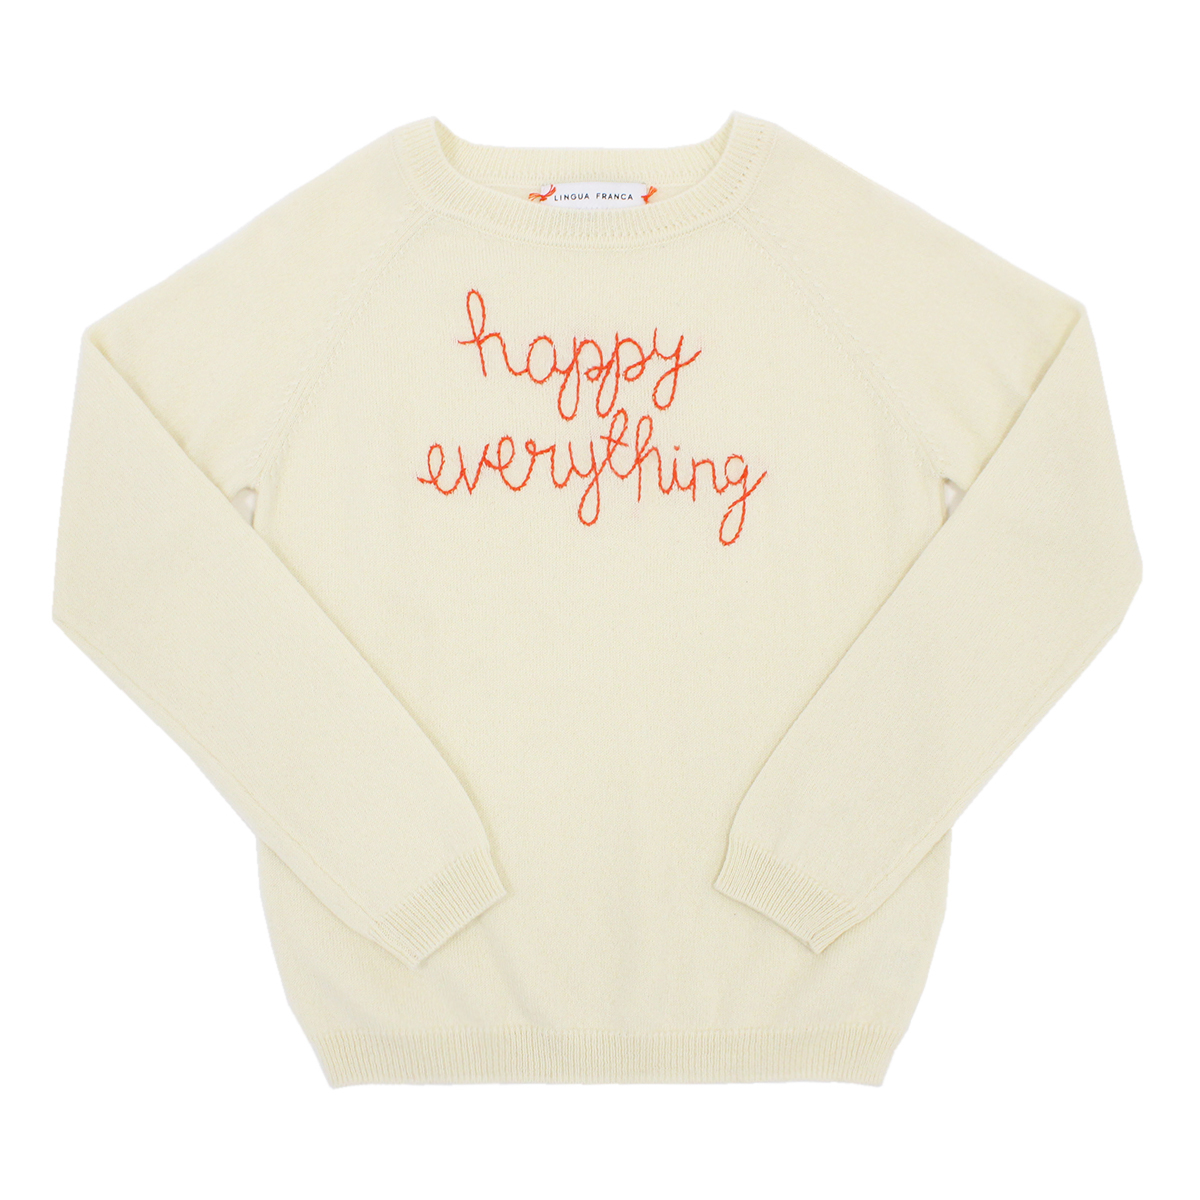 Lingua Franca Kid's Cashmere Sweater in Ivory w/ Happy Everything embroidery